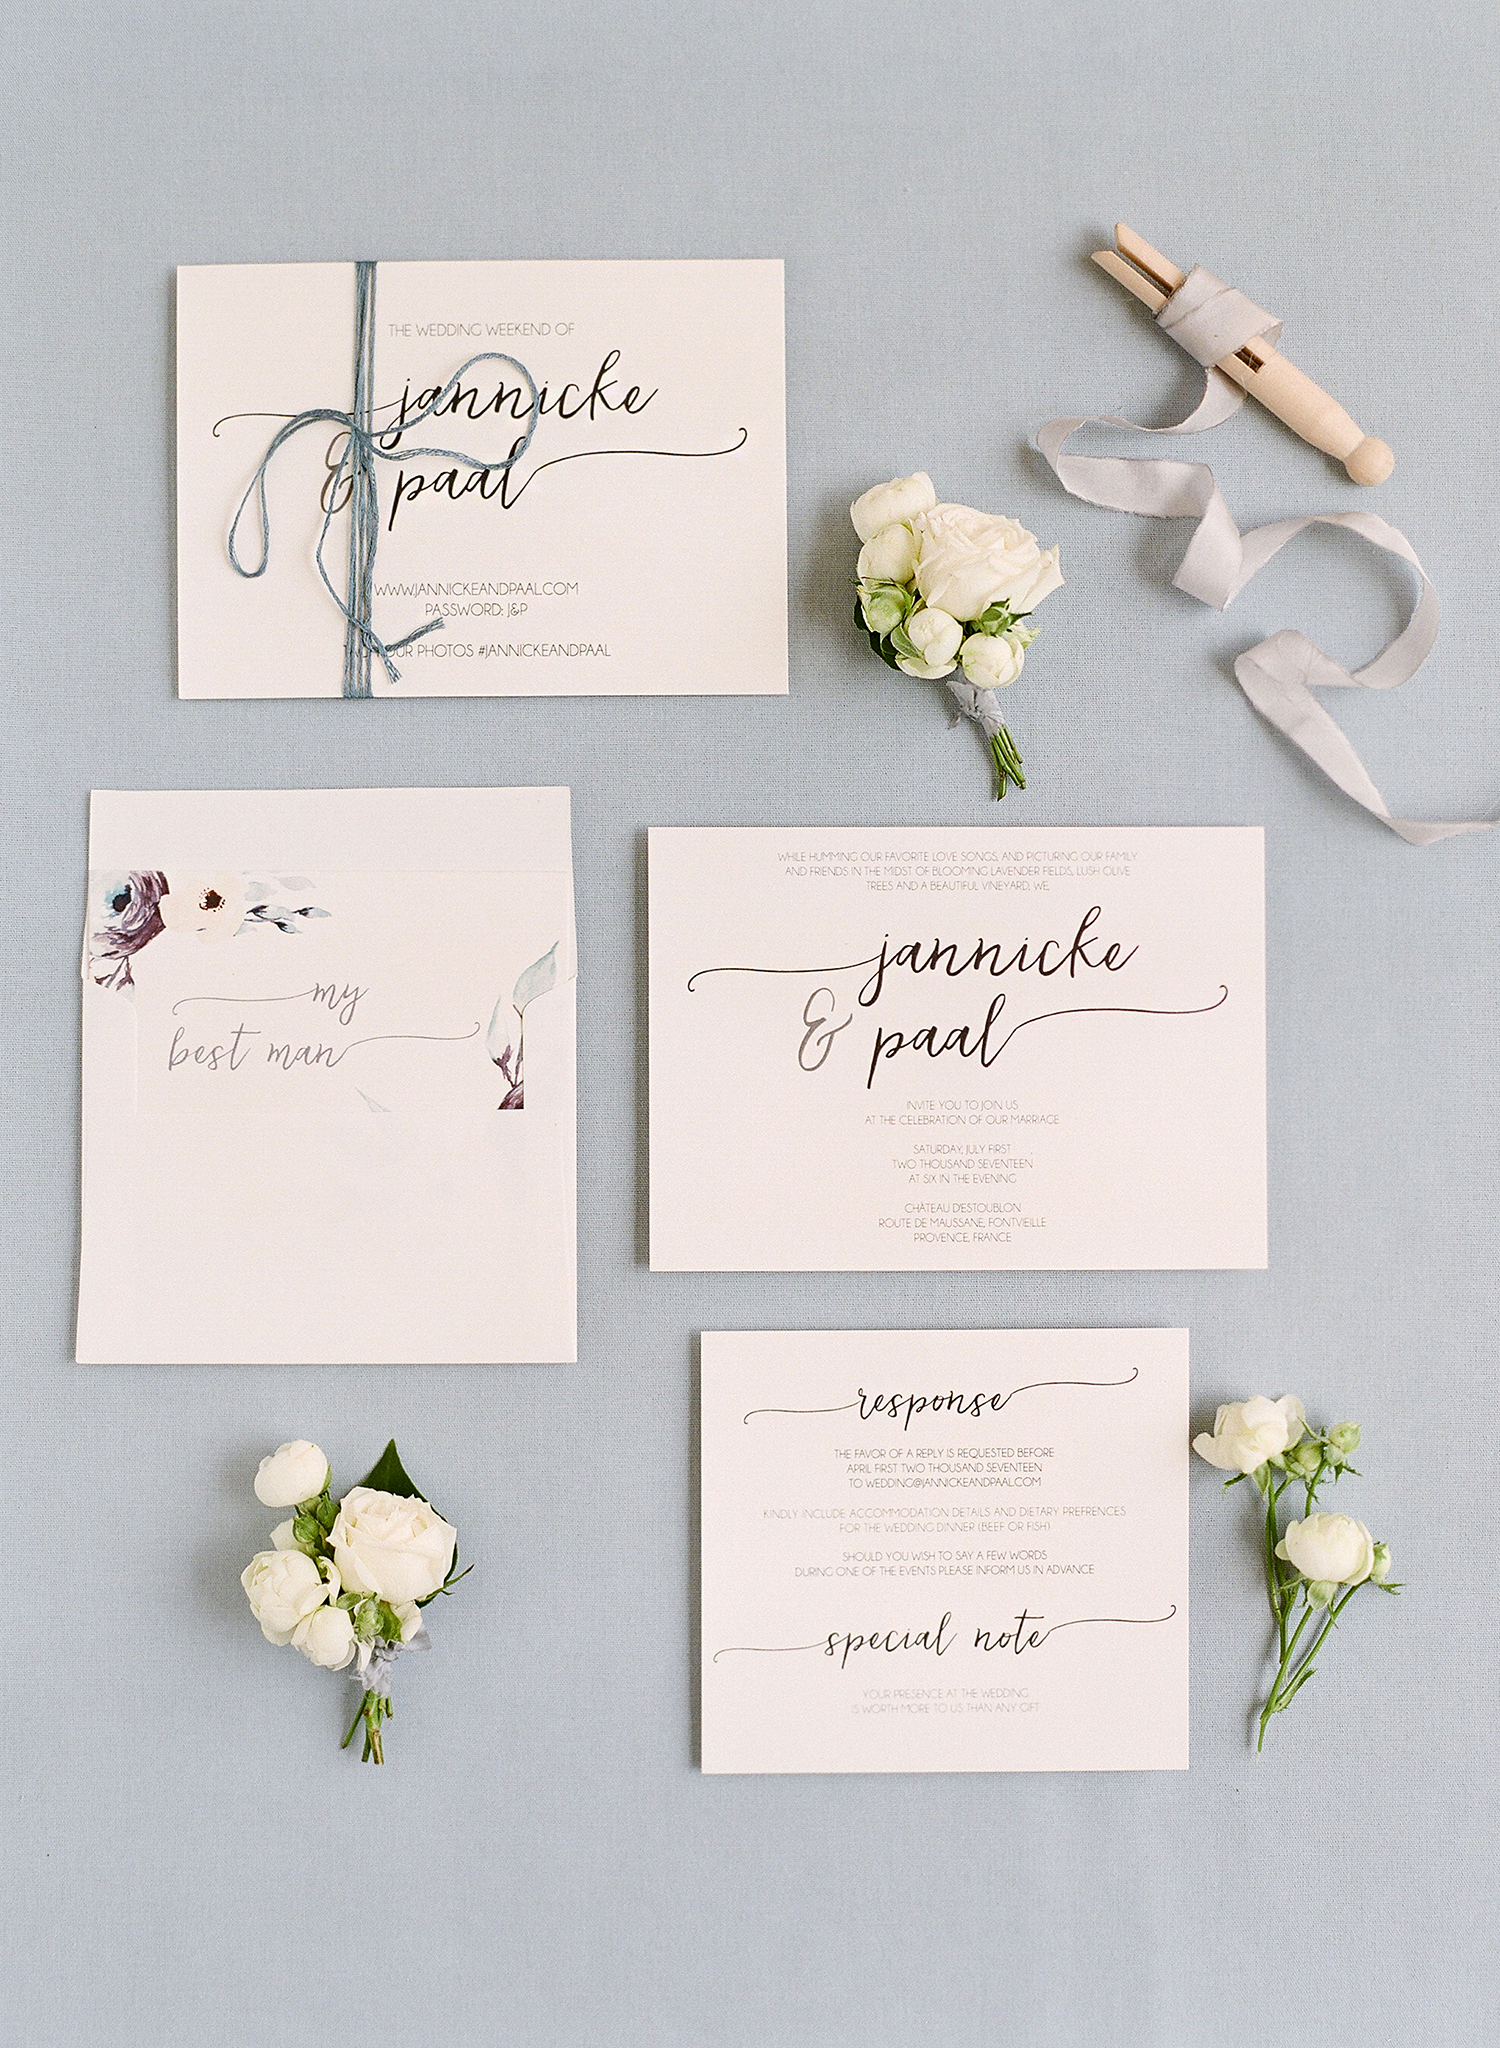 jannicke paal france wedding stationery